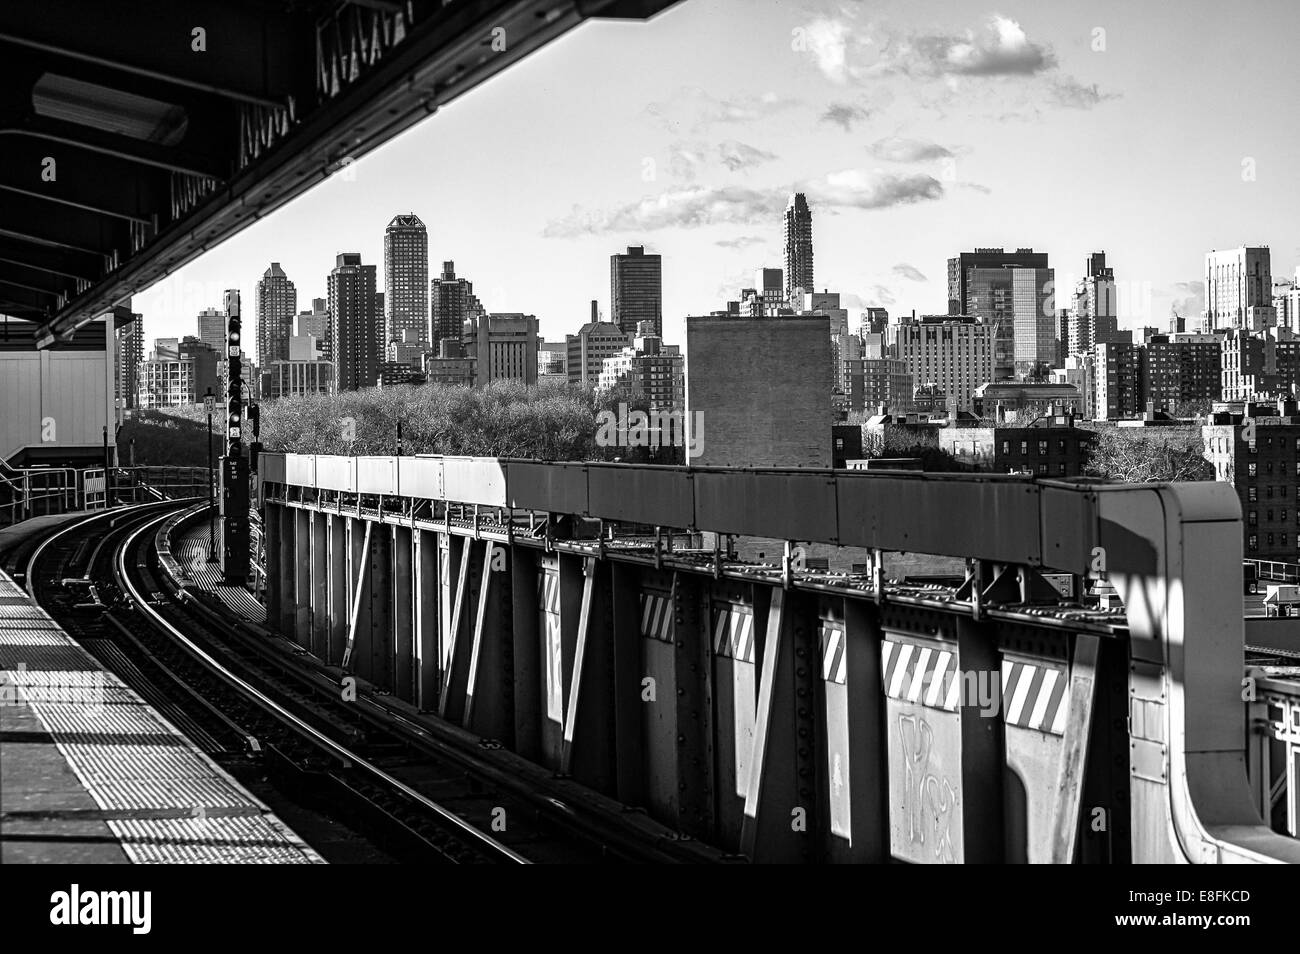 USA, New York State, New York City, Queens Plaza Stock Photo